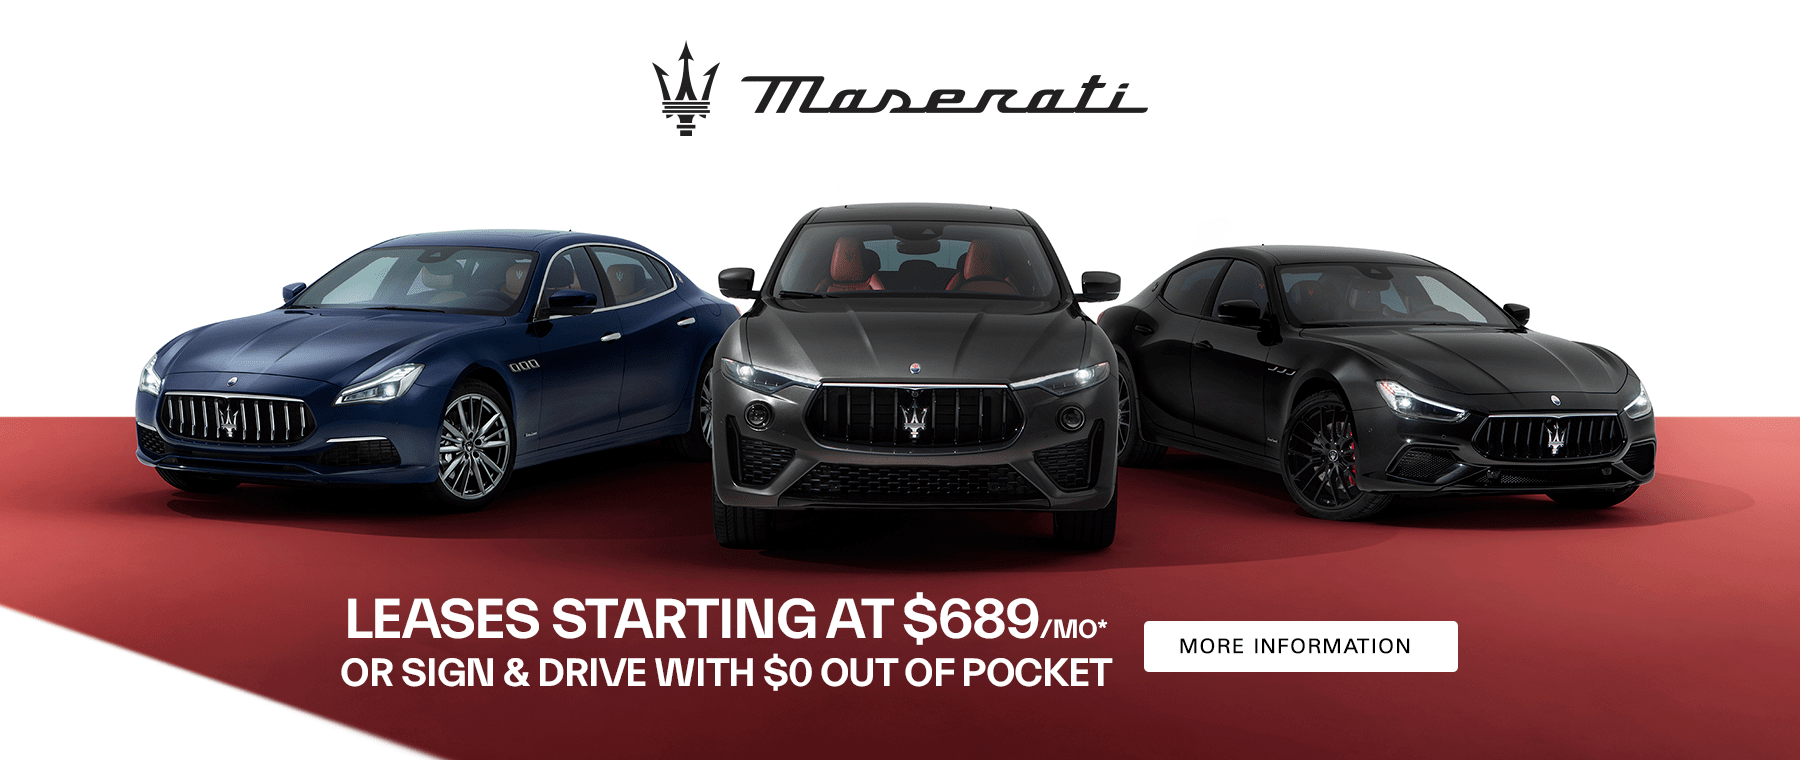 Maserati Lease Offer in Fort Lauderdale near Weston